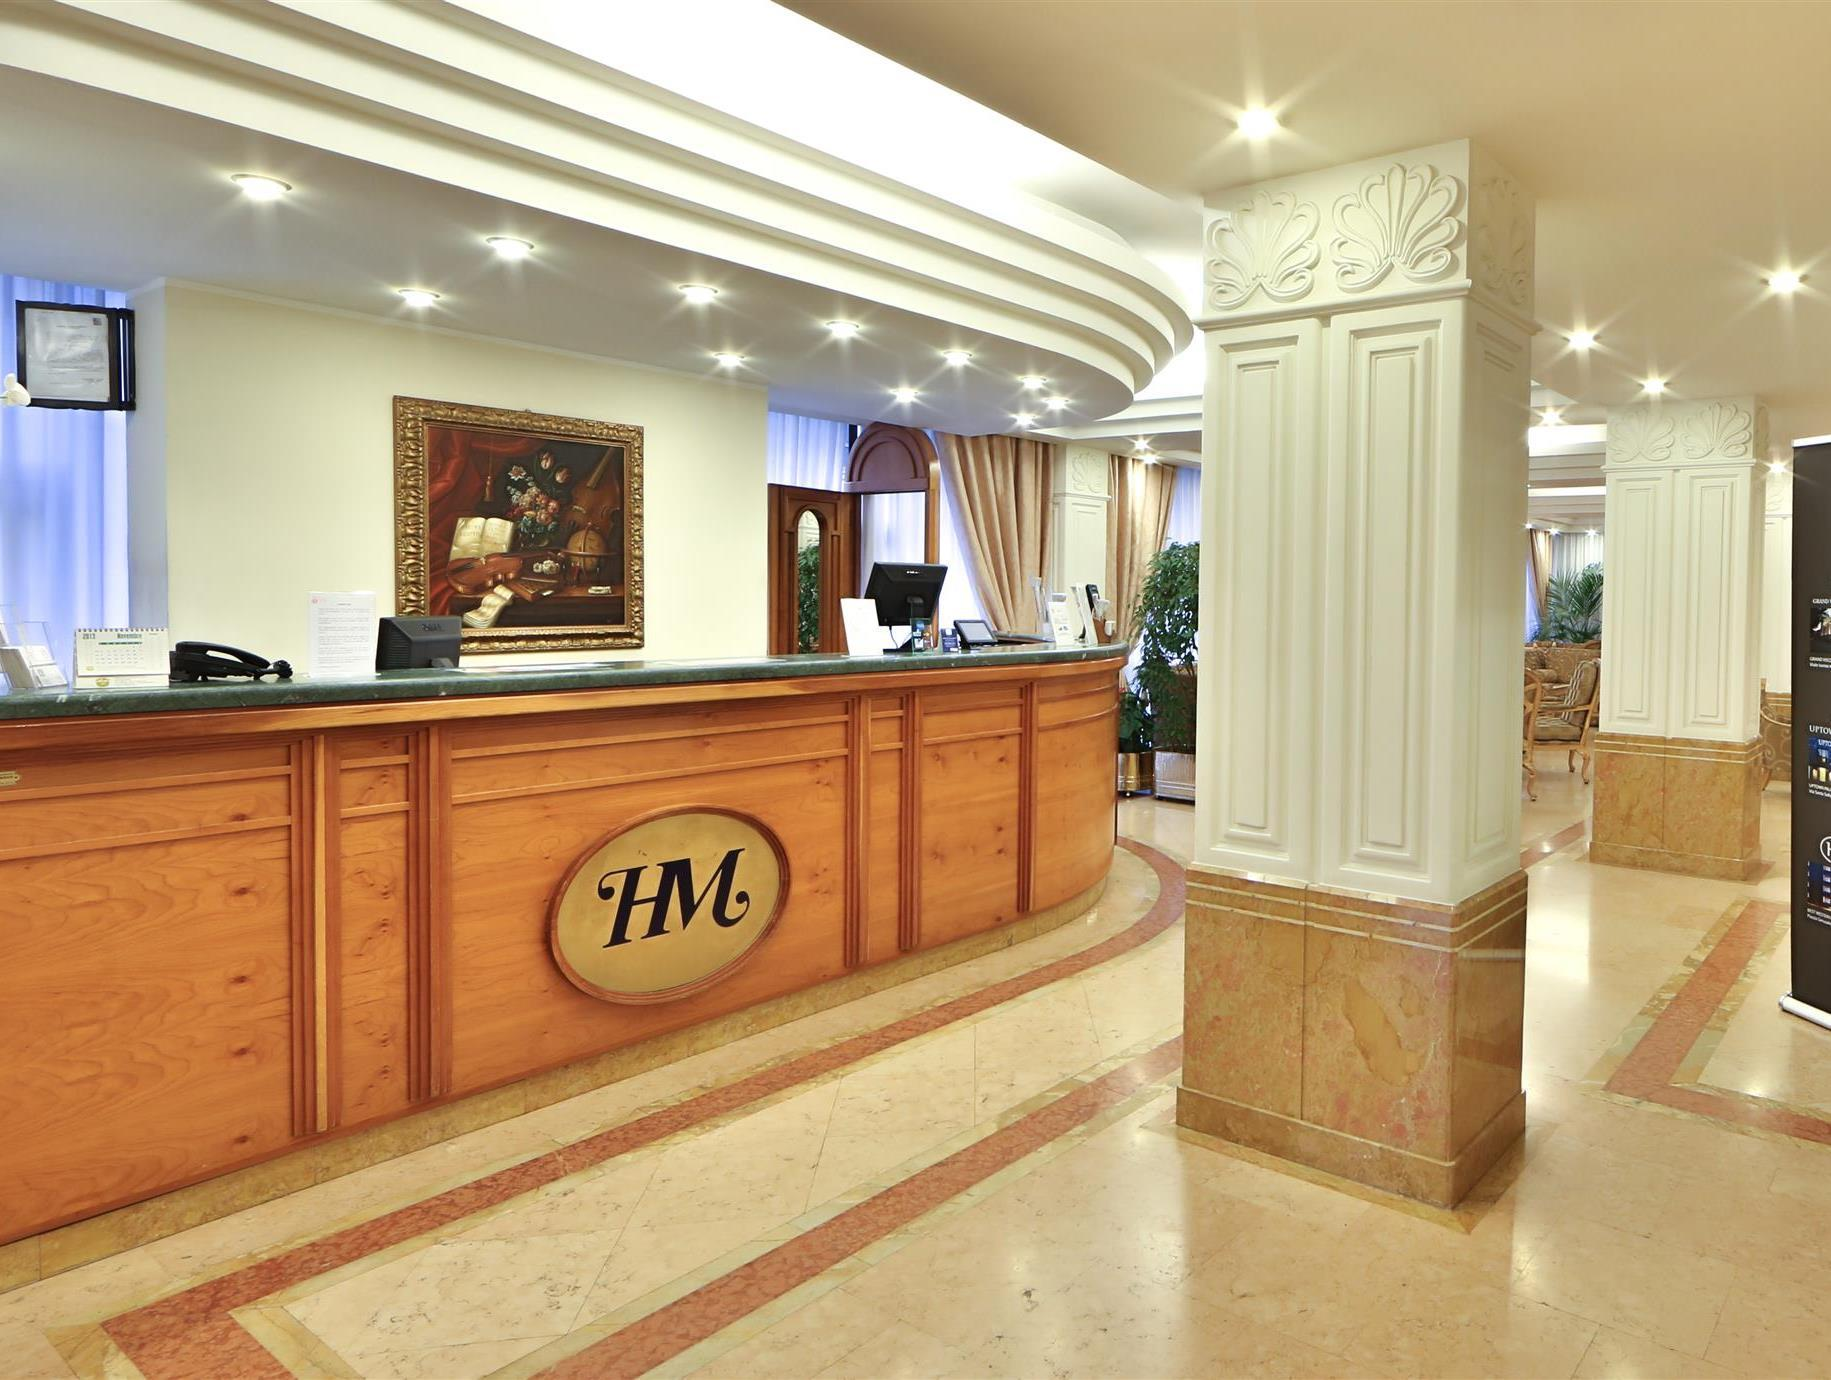 Europe Accommodation To Stay On Agoda Com Or Booking Com